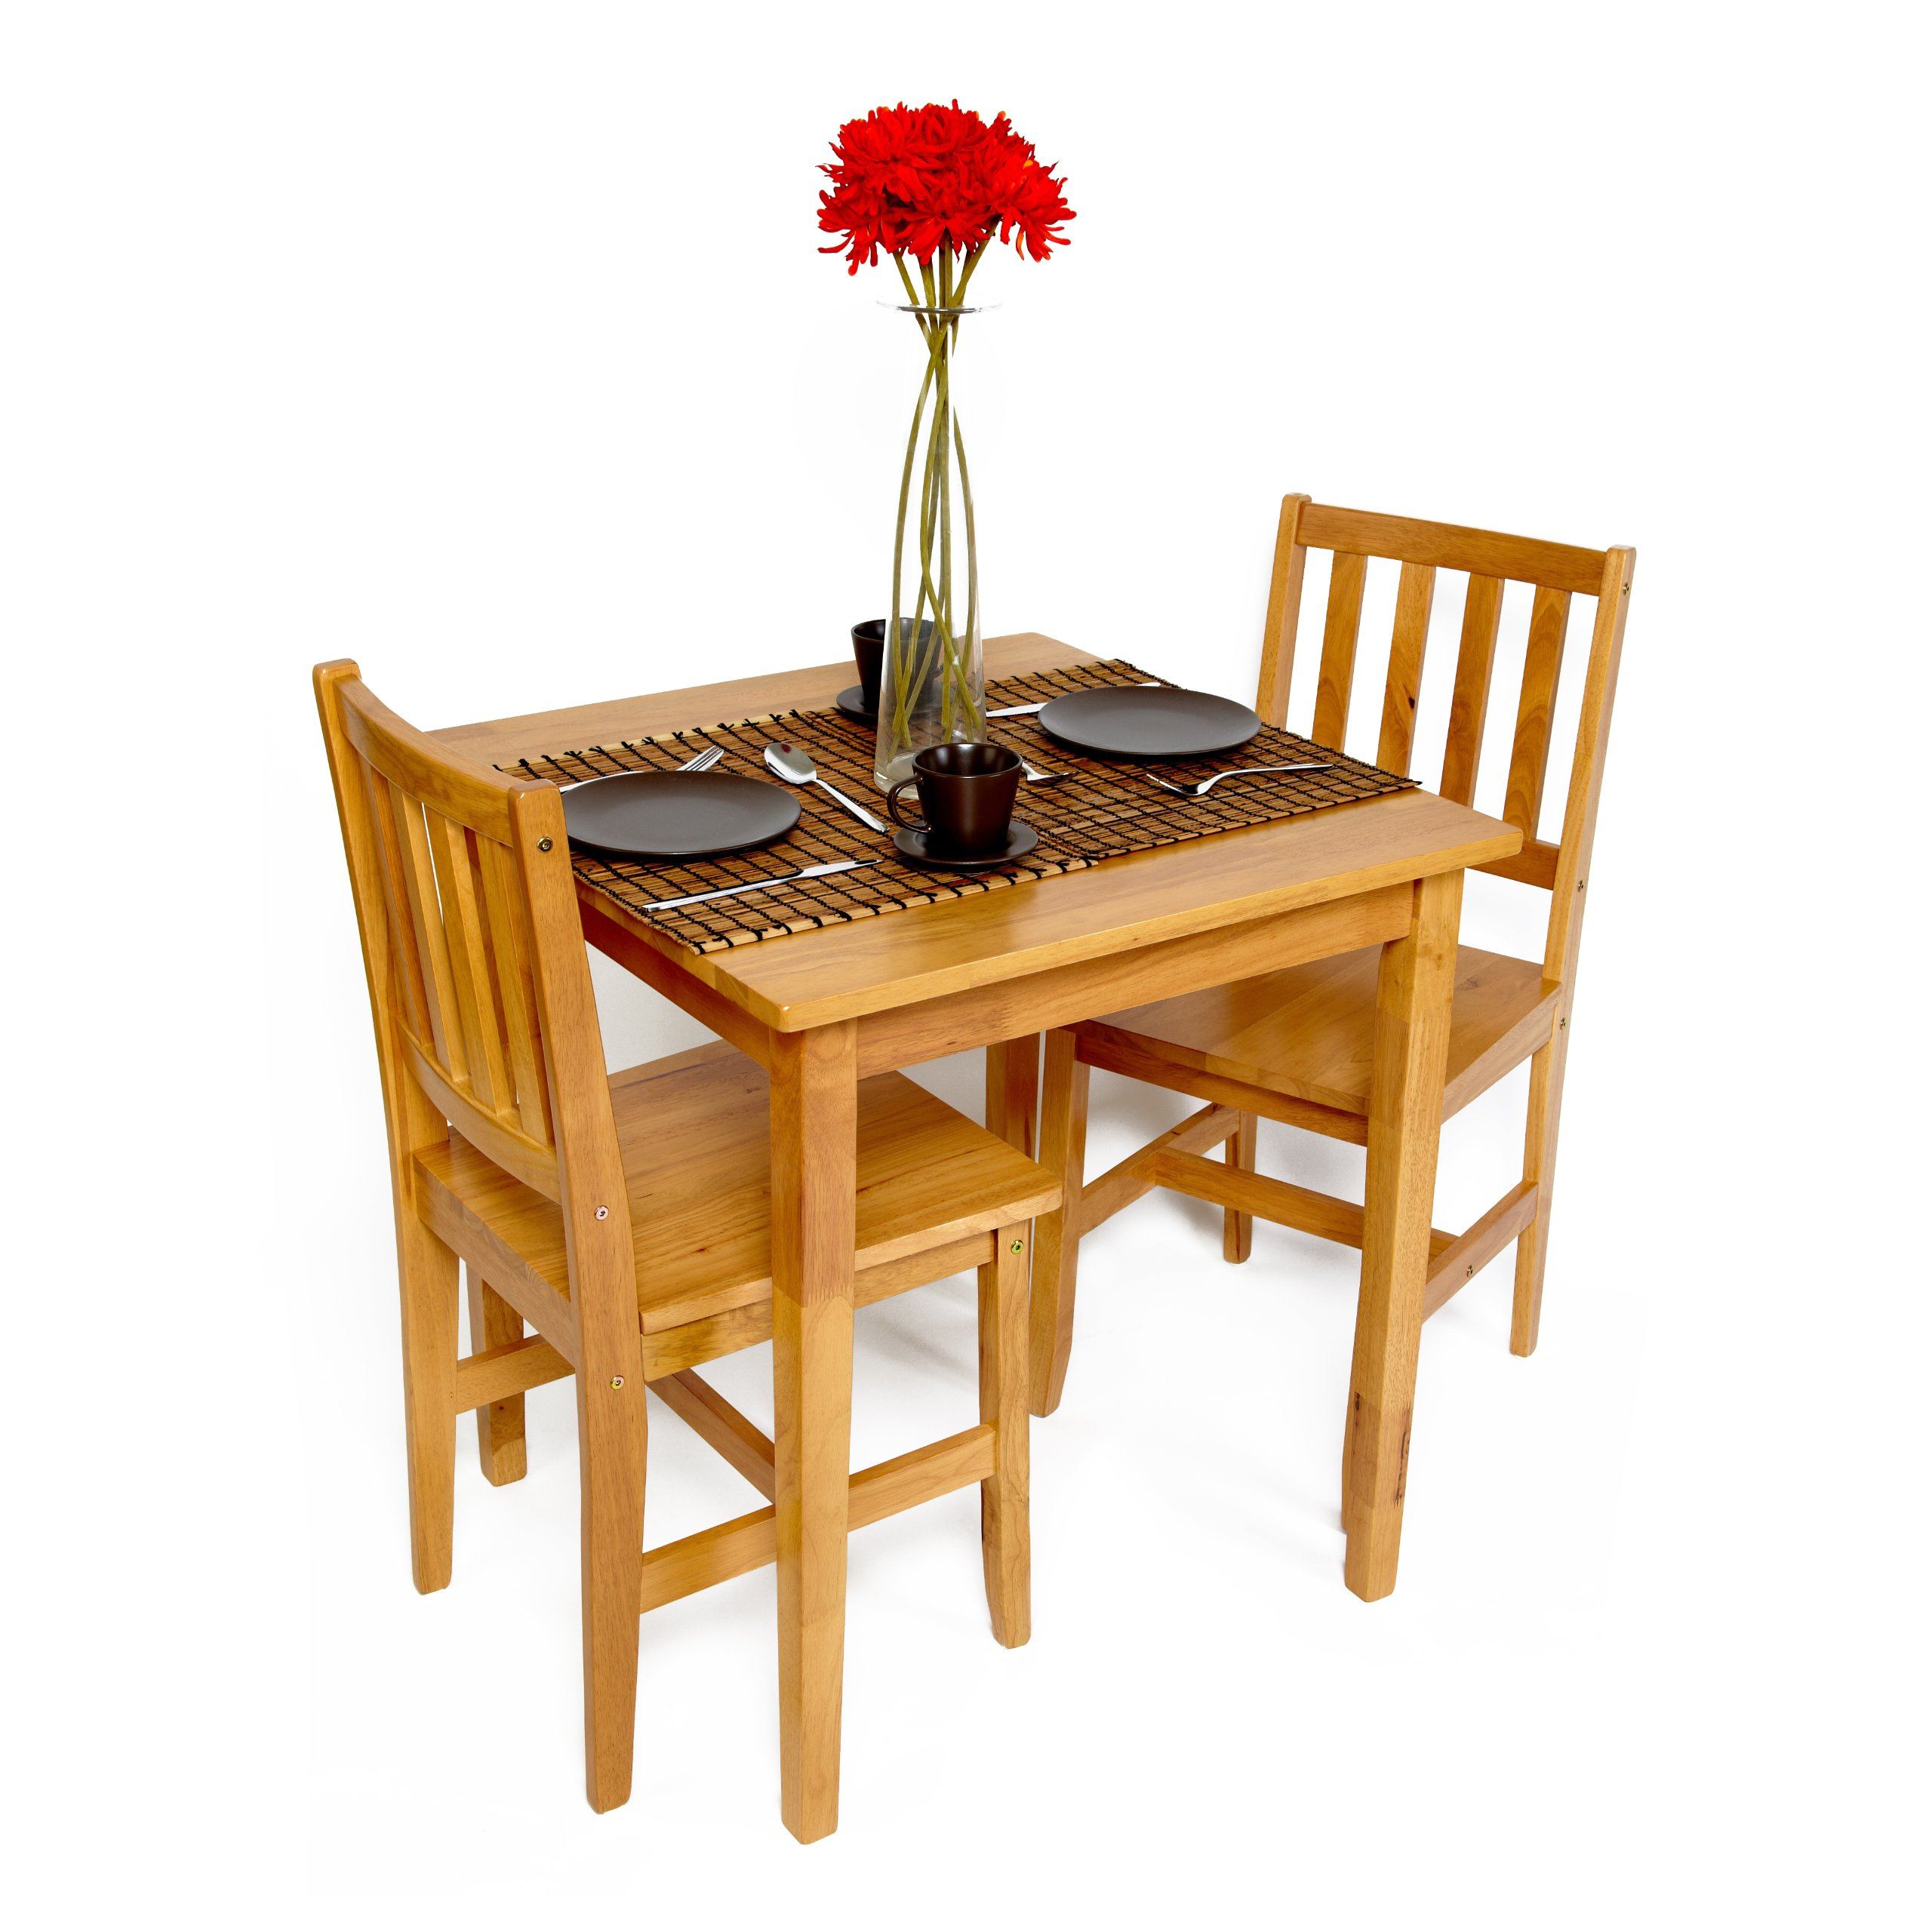 kitchen tables and chairs amazon co uk rh amazon co uk amazon small kitchen tables amazon prime kitchen tables